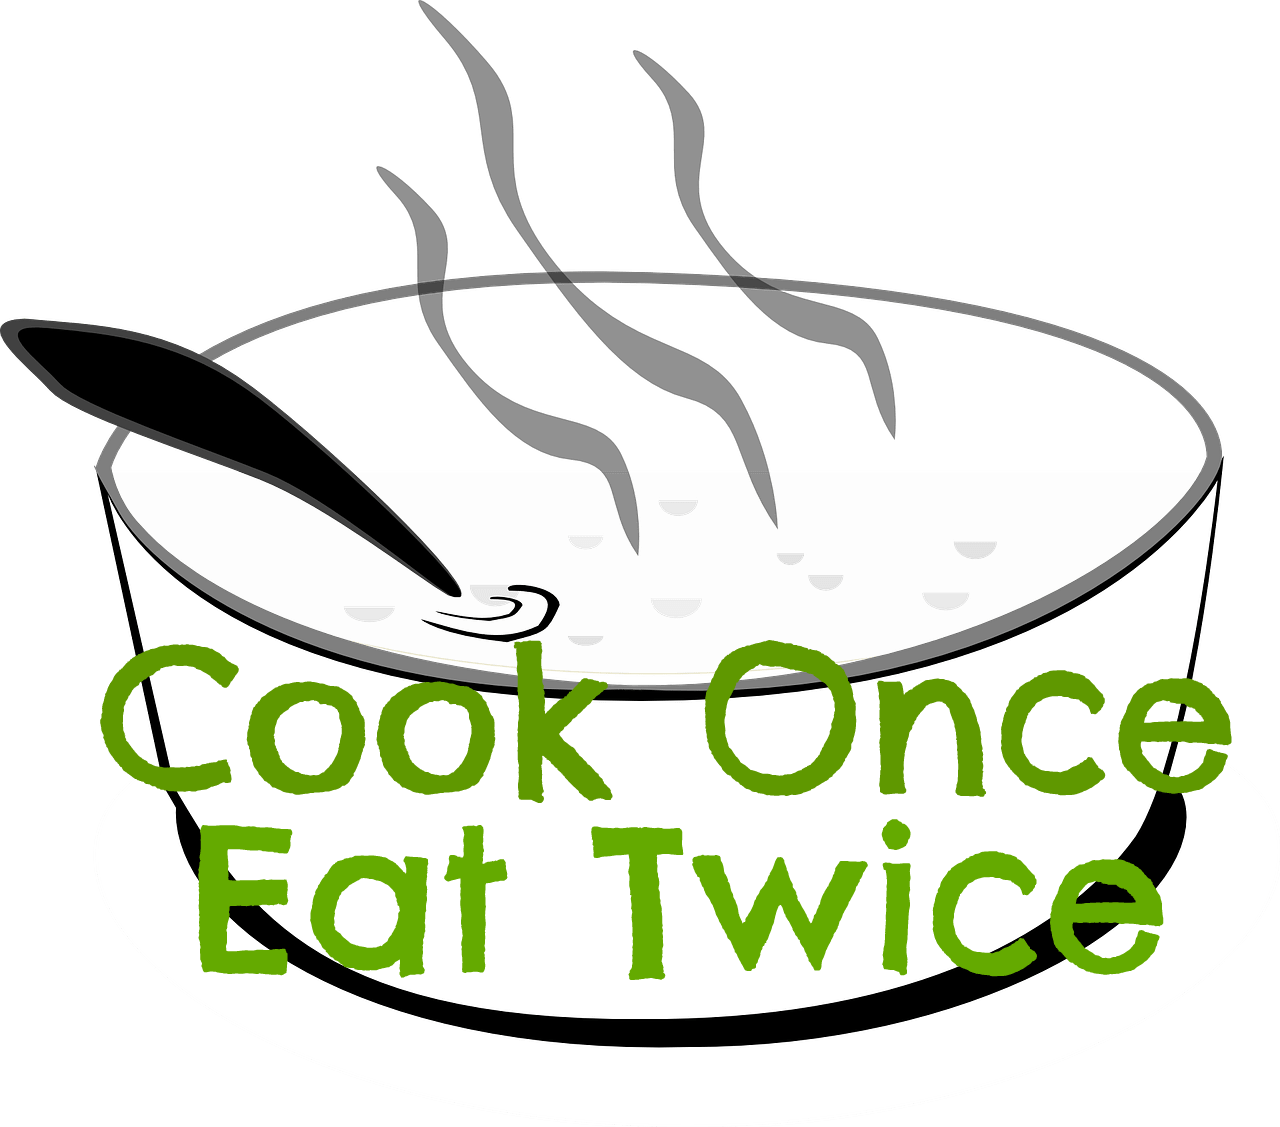 cookonceeattwice-2.png (1280×1127)